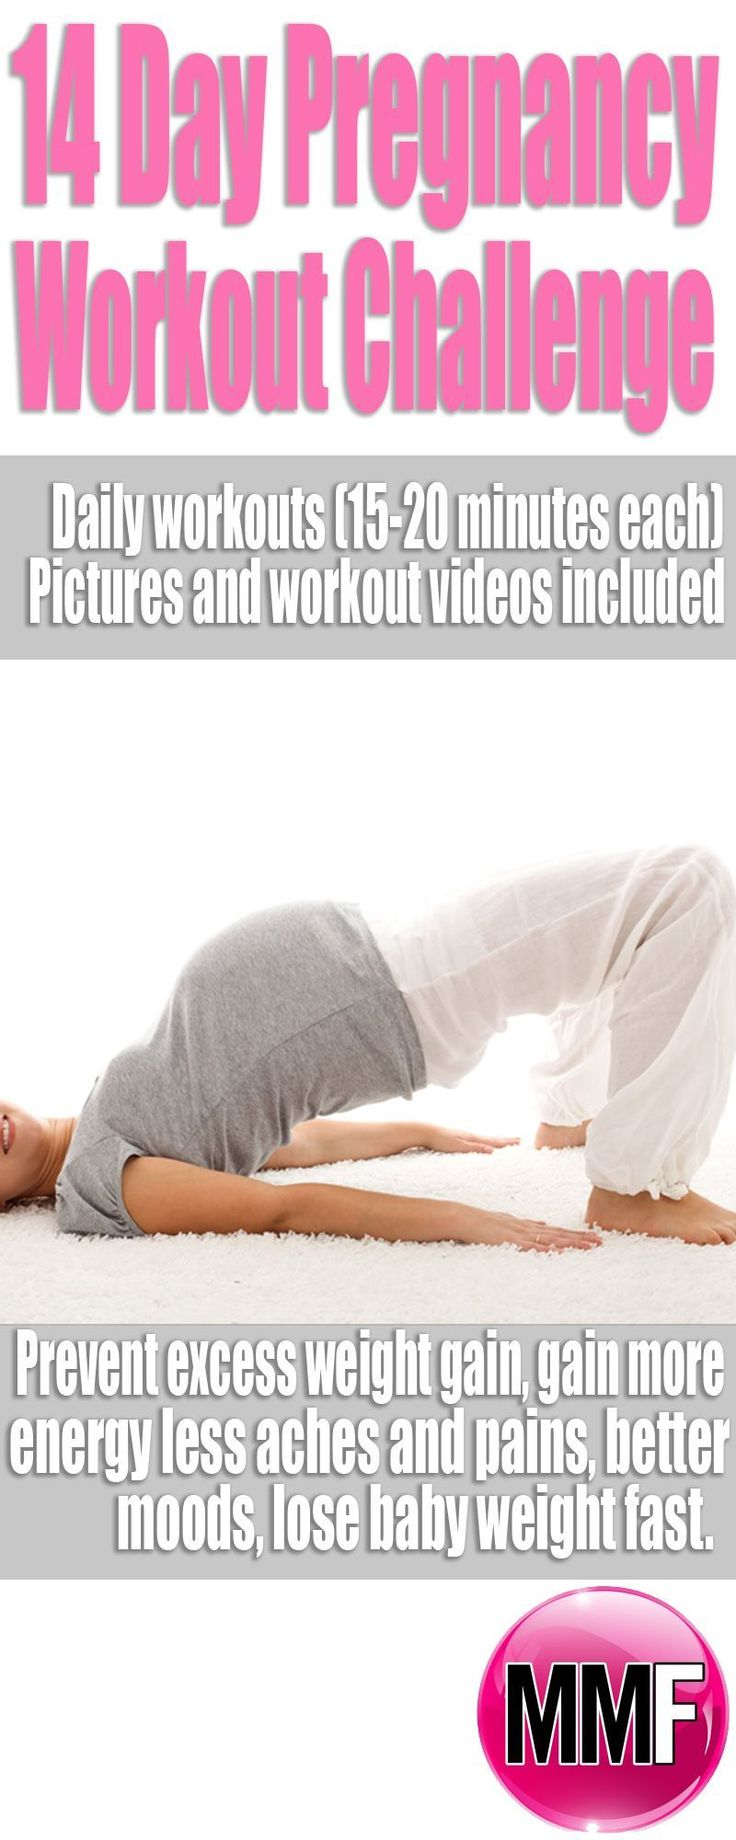 The motivation and guidelines you need to start exercising during pregnancy. 14 Day Jumpstart Pregnancy Workout Challenge Daily workouts and motivation. Pictures and workout videos included #pregnancyguidelines,